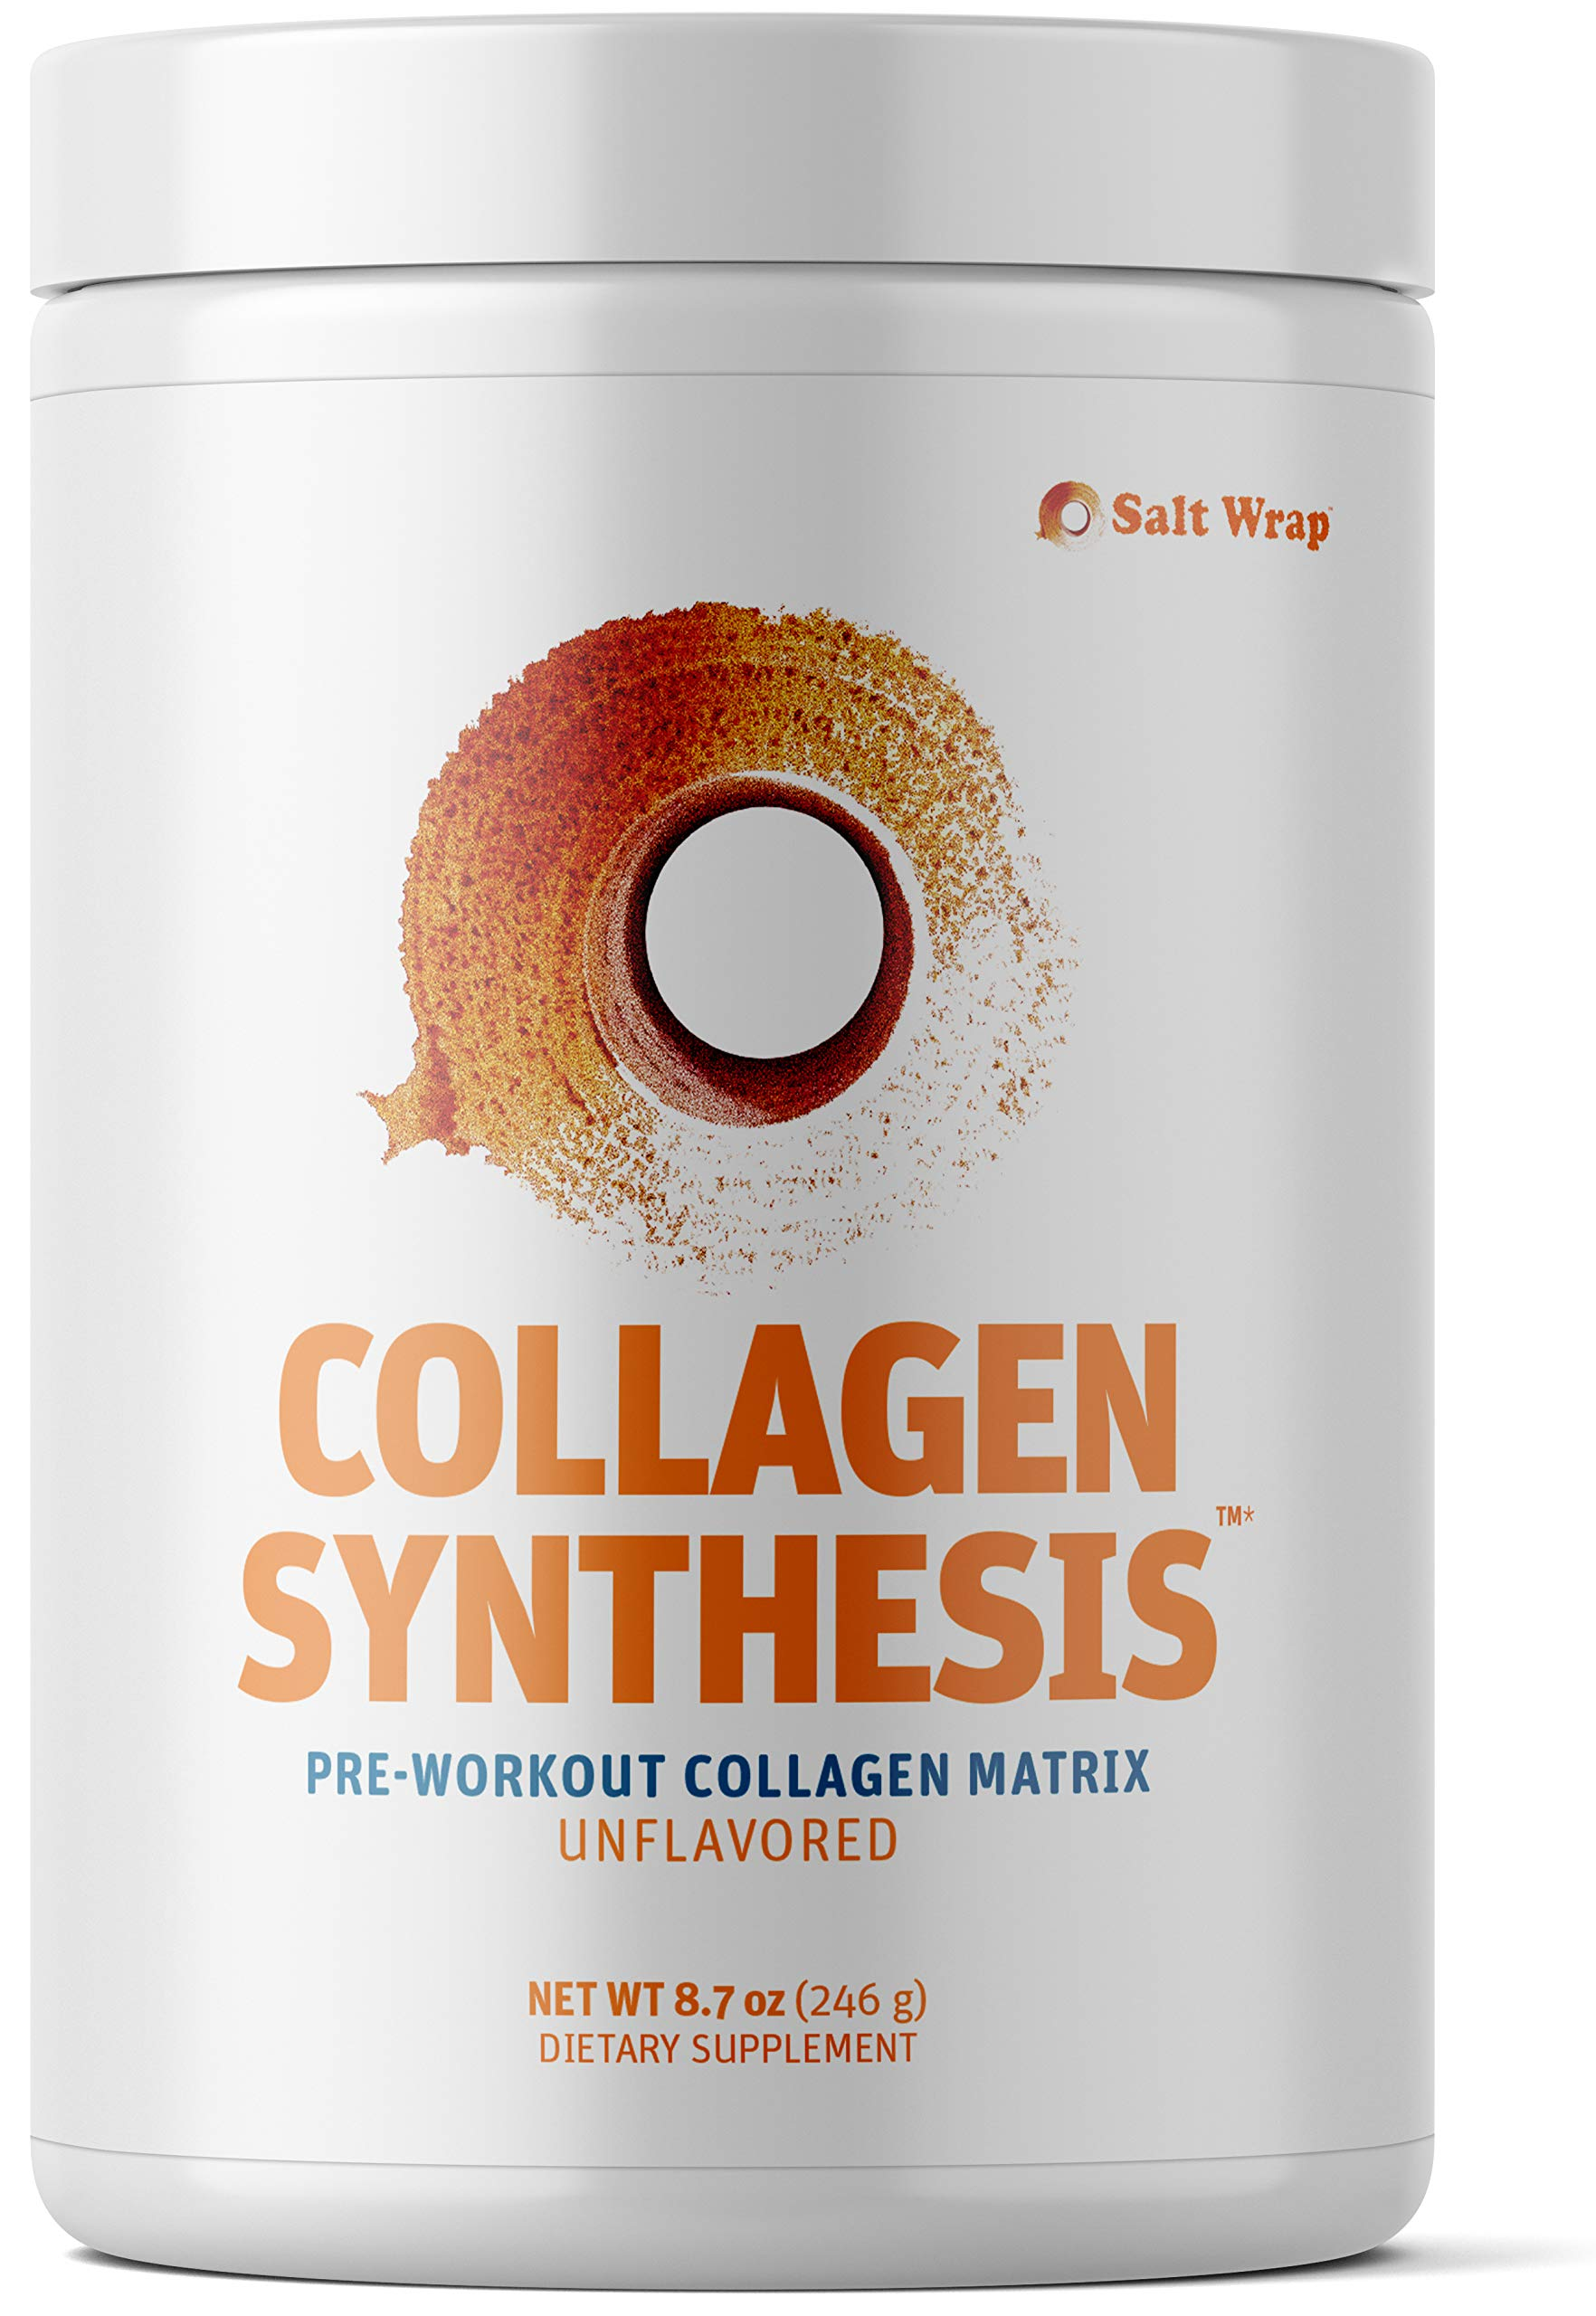 Collagen Synthesis - Pre Workout Collagen Peptides Powder for Tendon, Ligament & Cartilage Healing – Supplement to Boost Collagen Production & Repair with Vitamin C – Unflavored